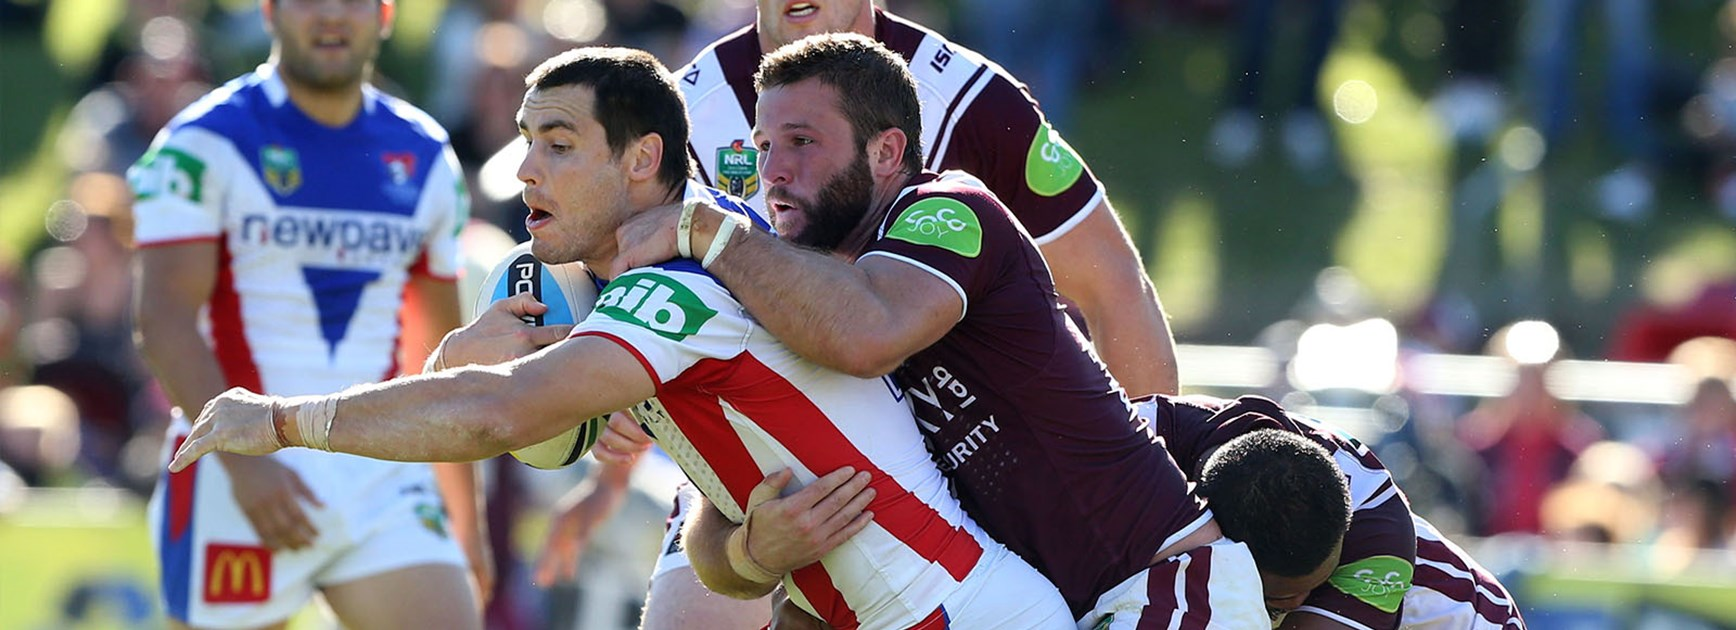 James McManus is tackled during the Knights clash with Manly at Brookvale Oval.